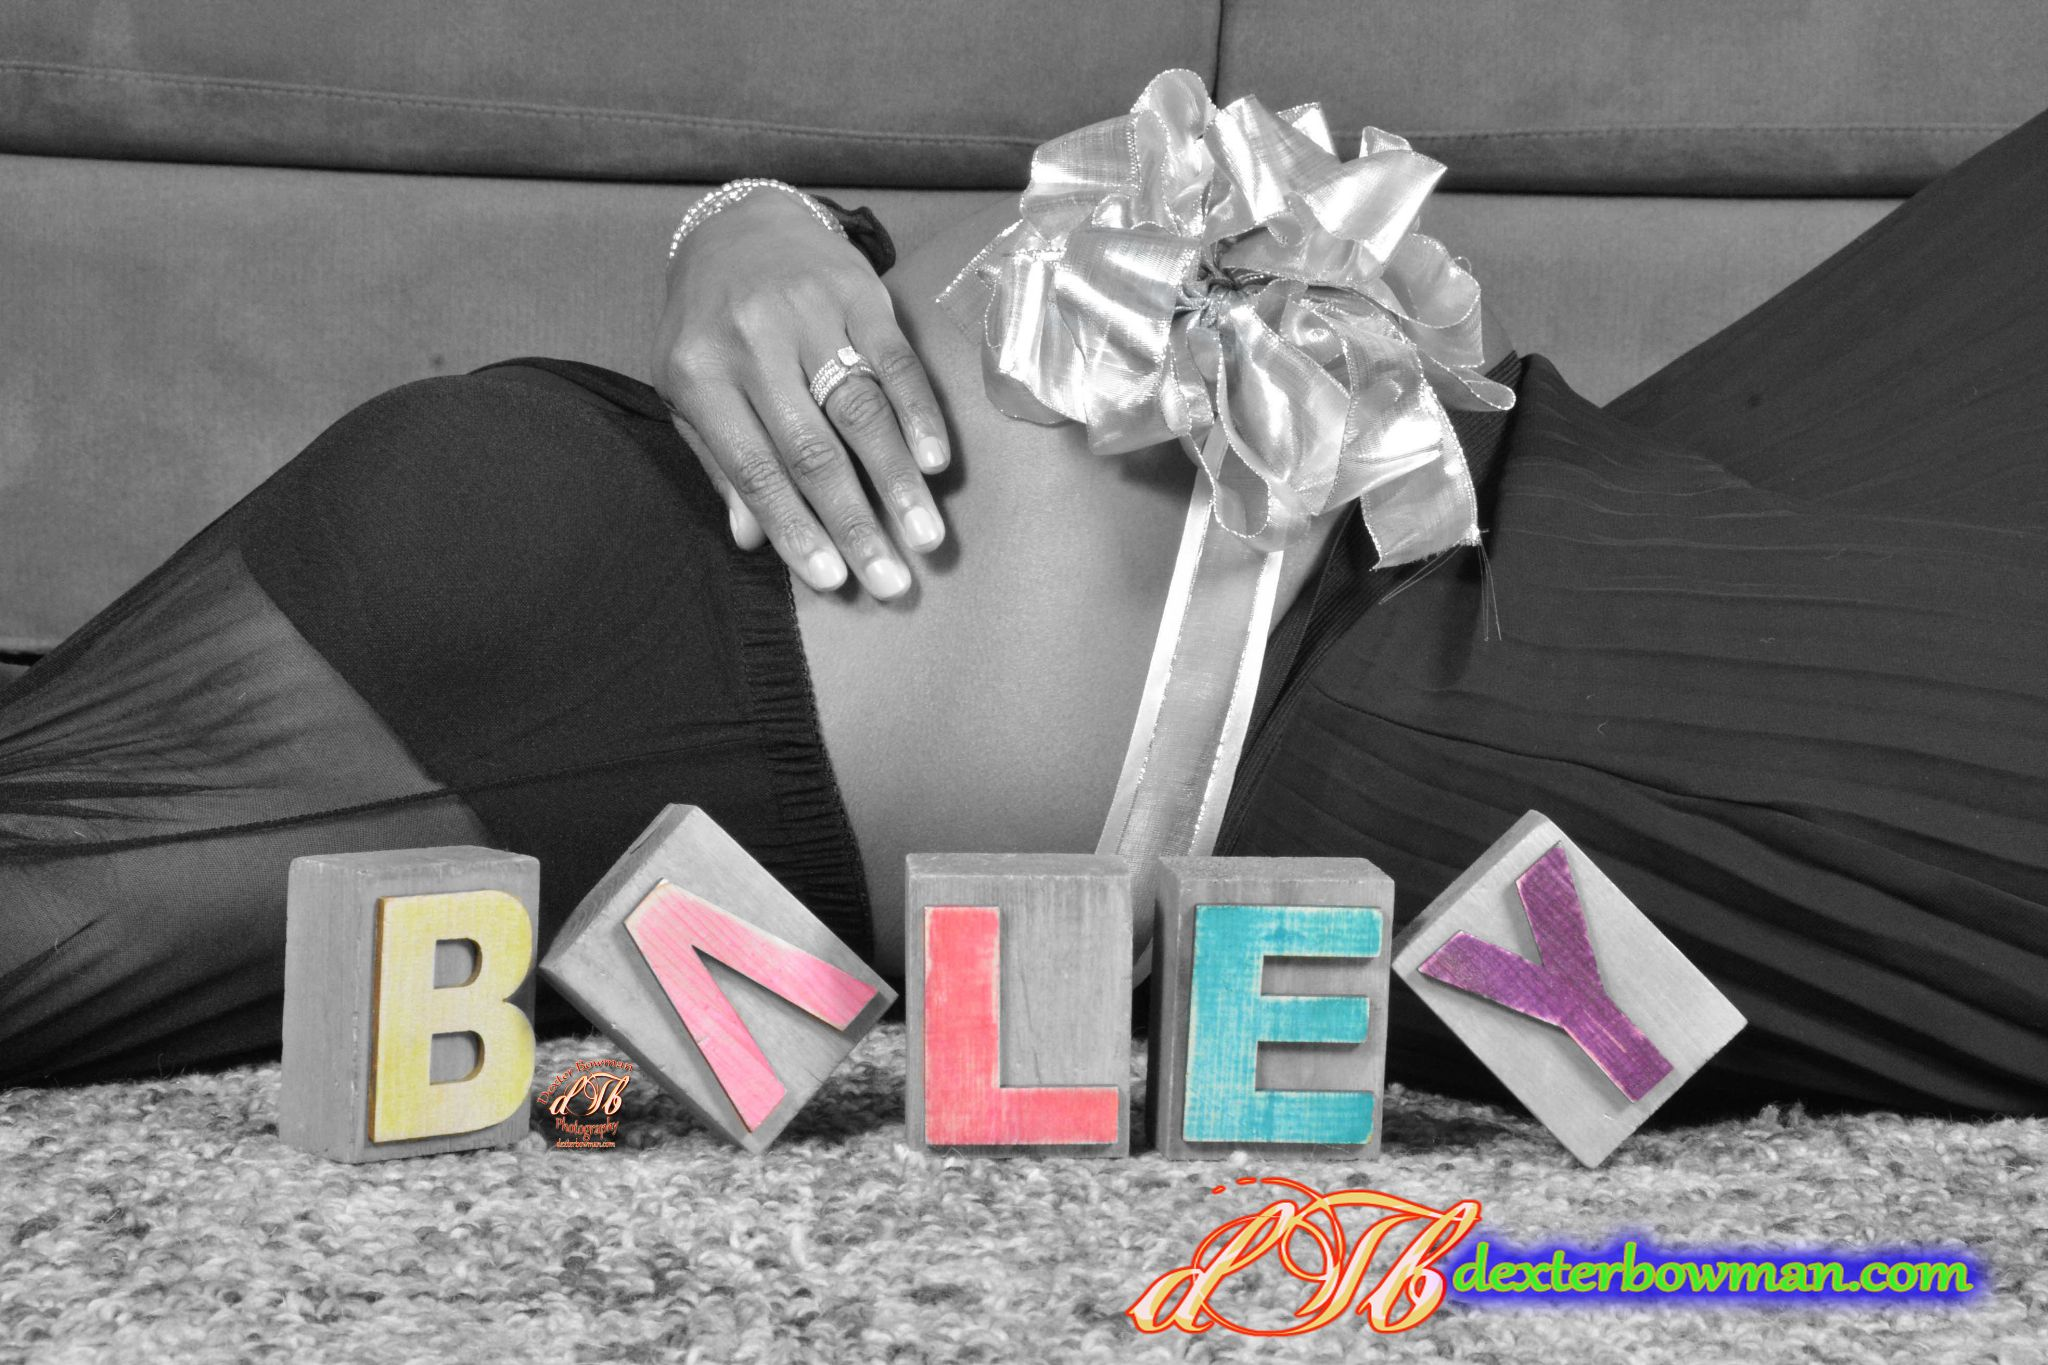 Baby Baley by Dexter Bowman